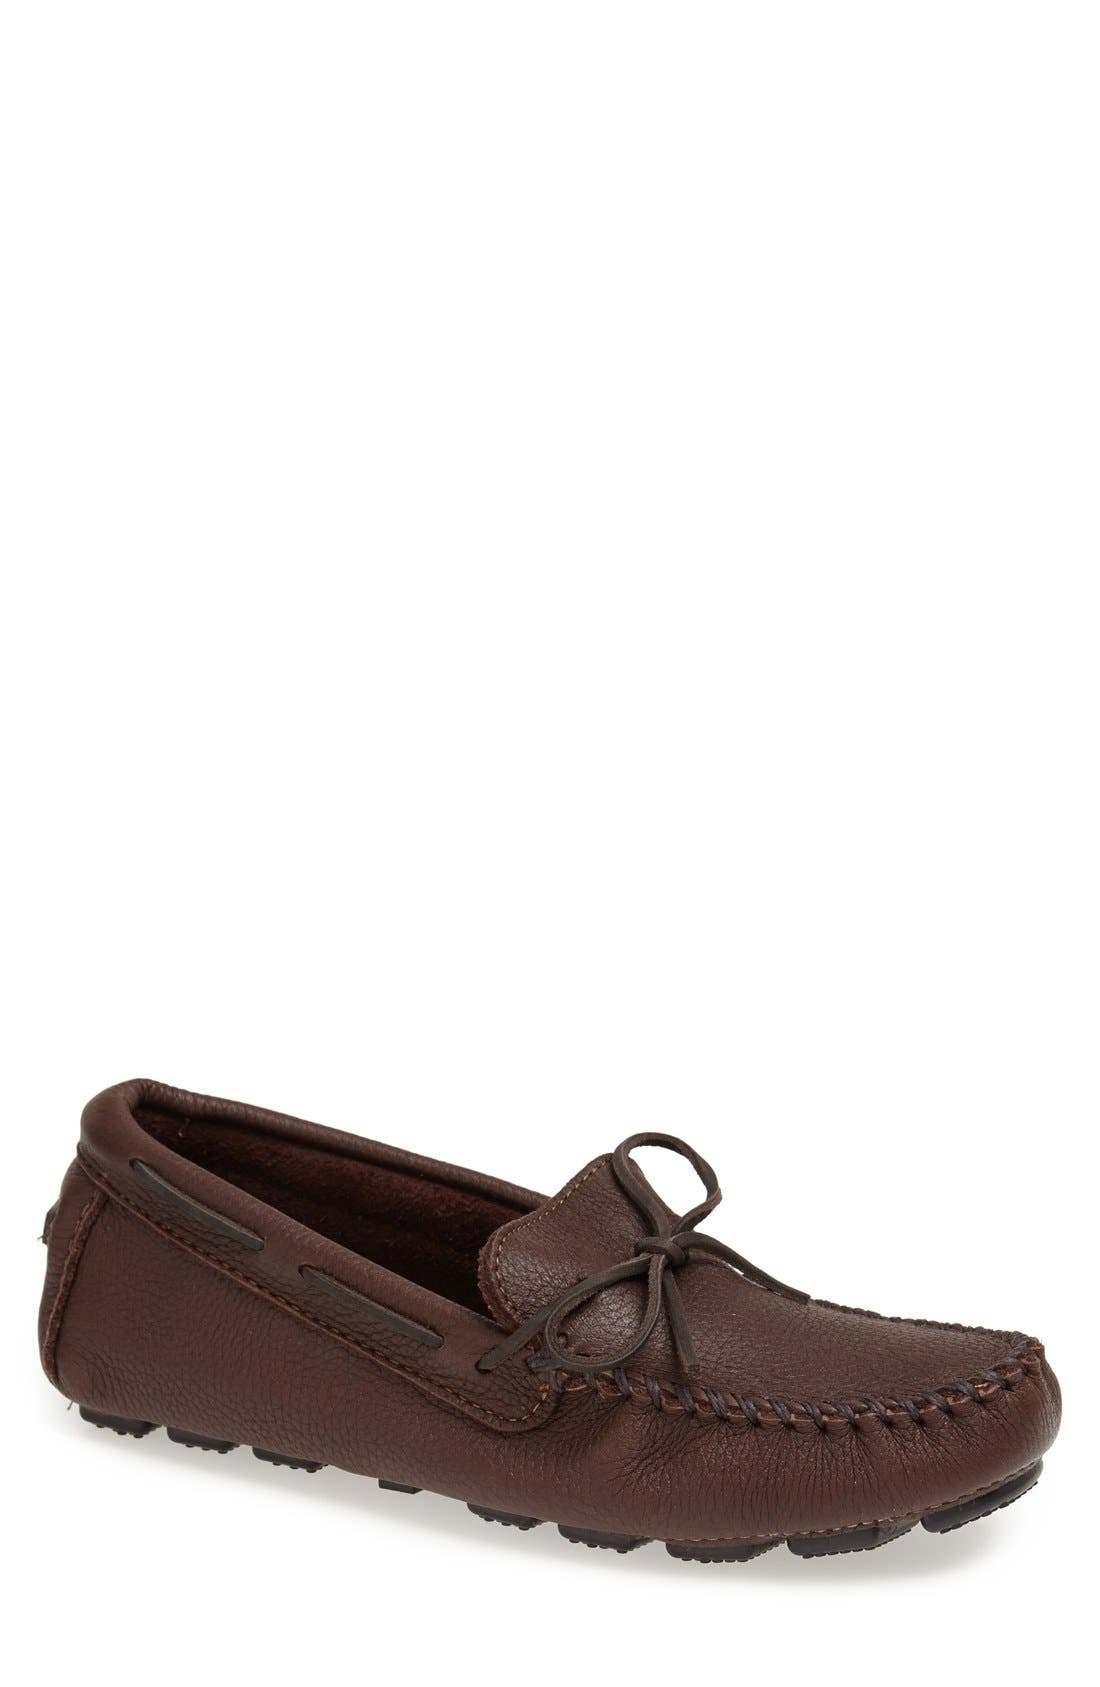 Minnetonka Moosehide Driving Shoe